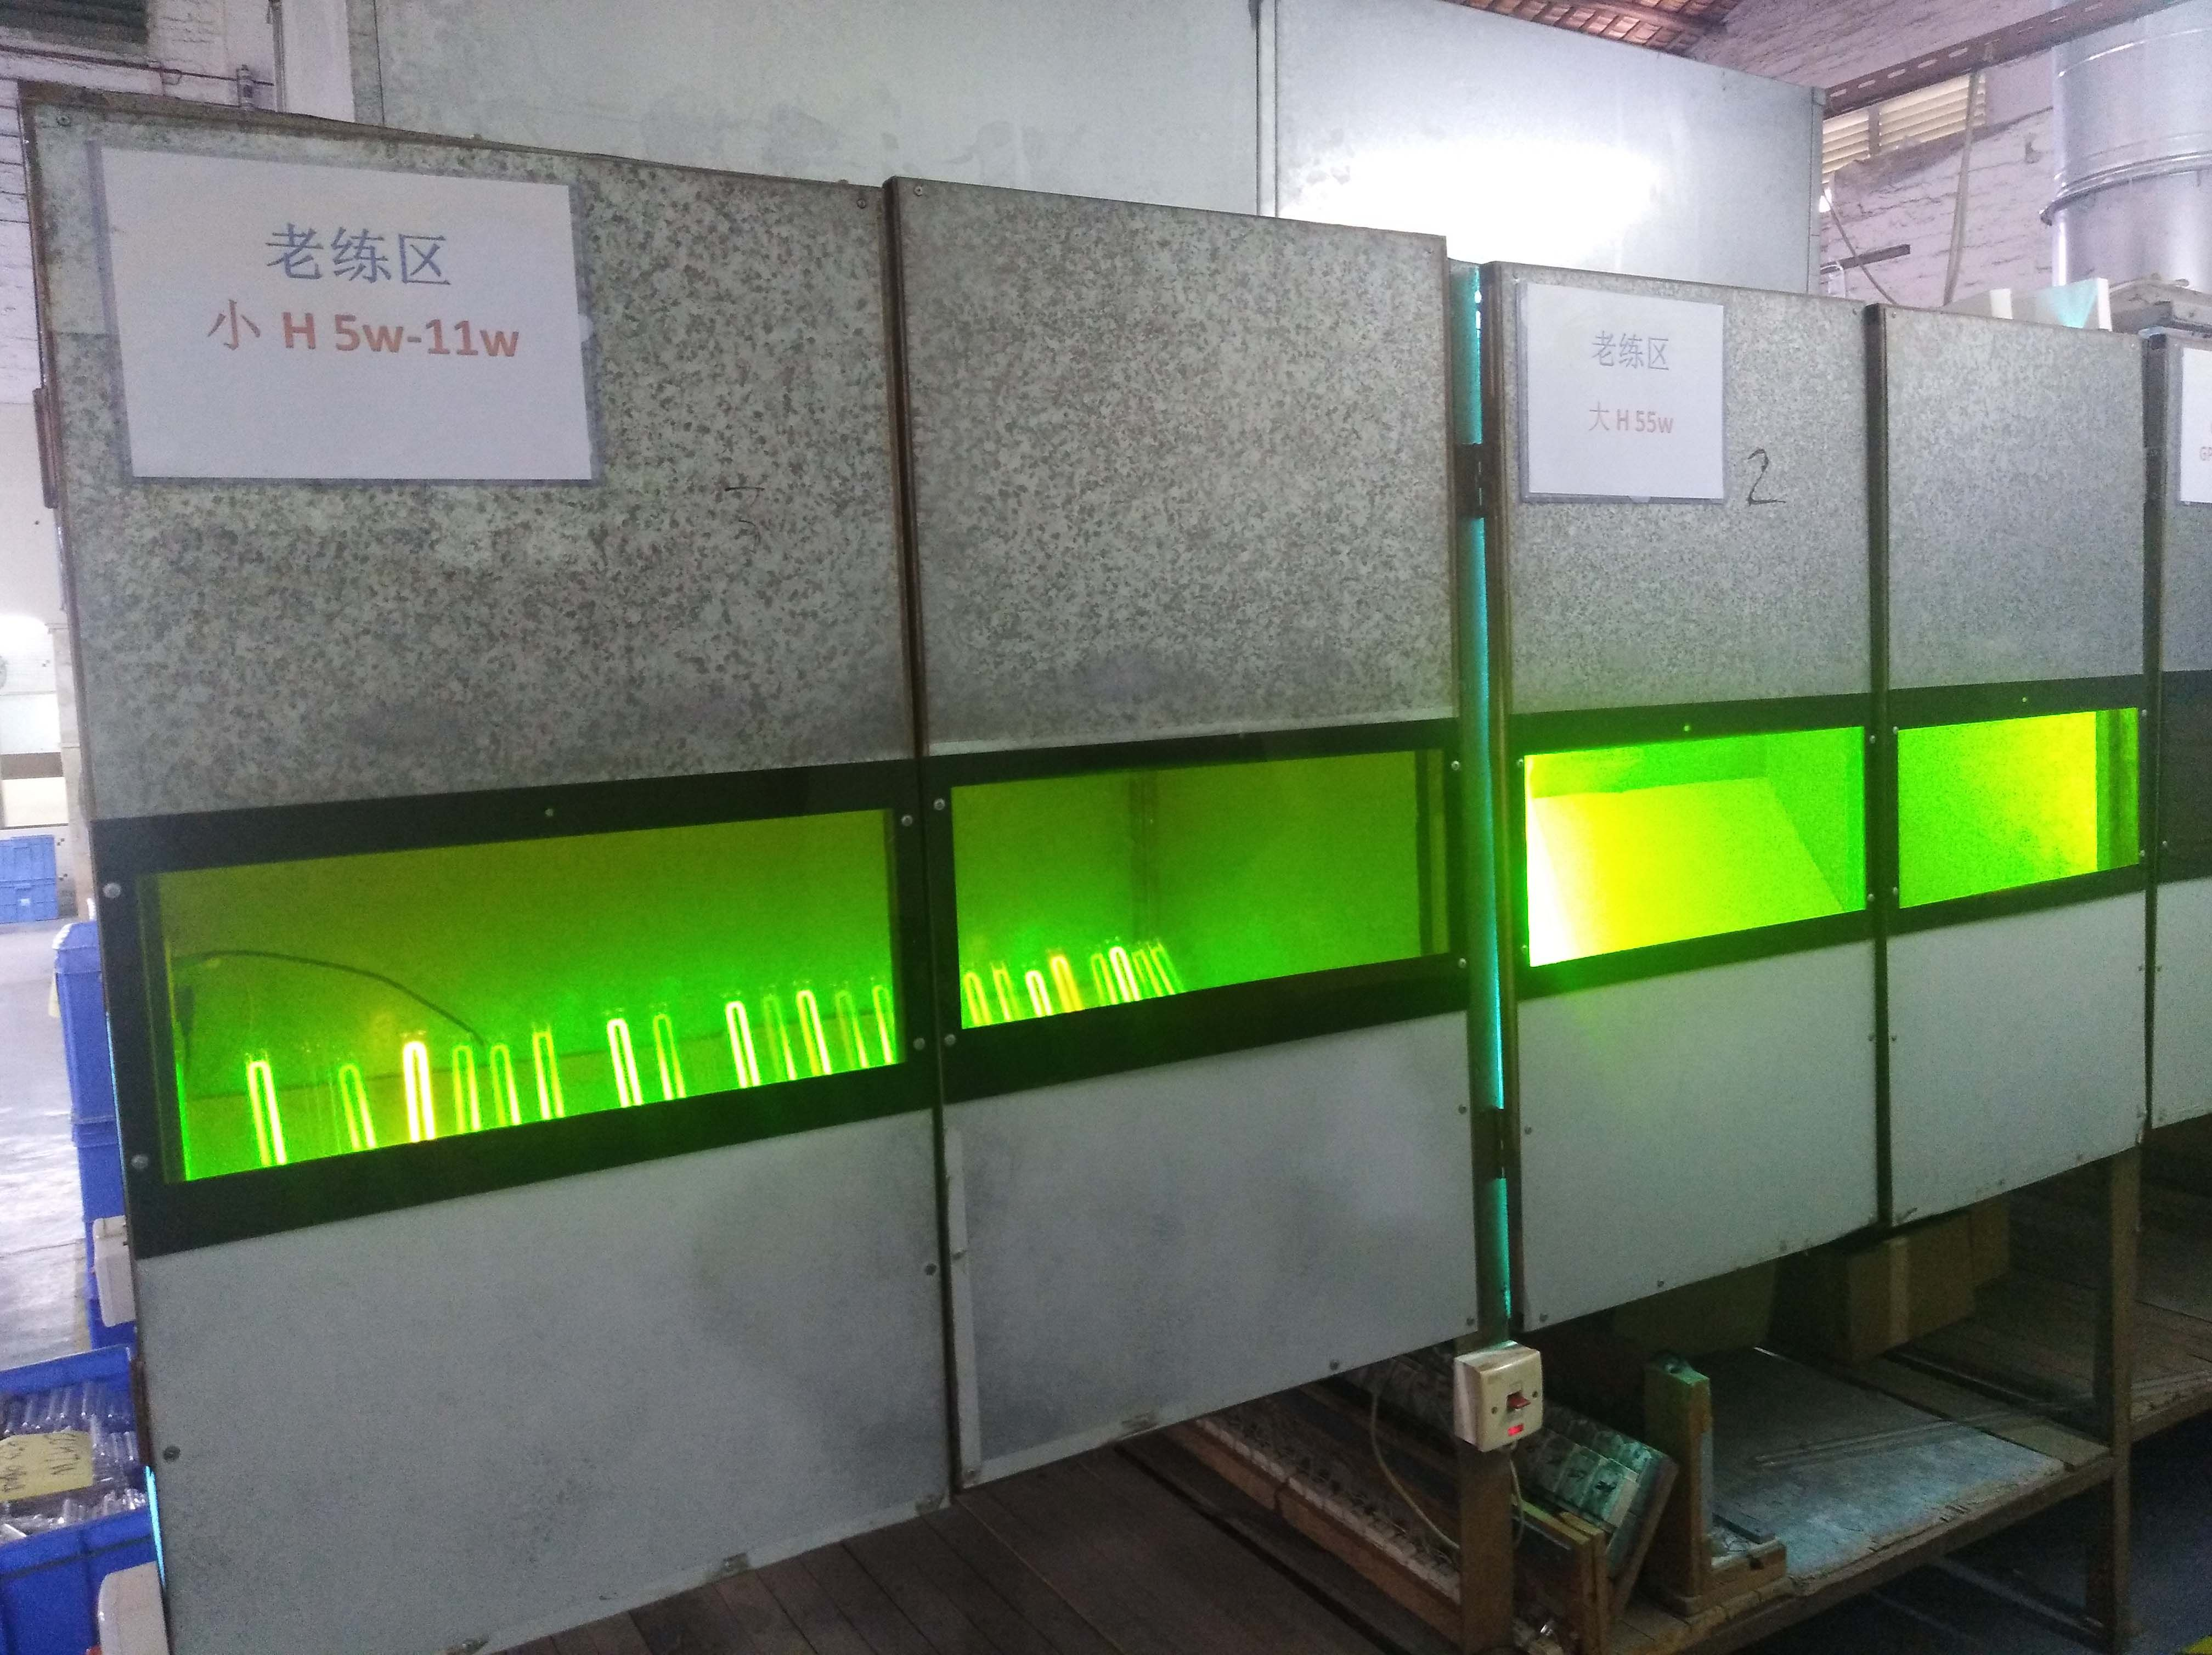 This Is Our Lamp Testing Area Each Lamp Will Be Tested Here Before The Next Step The Ones Unqualified Will Be Rejected In Order To Guarantee The Best Quality